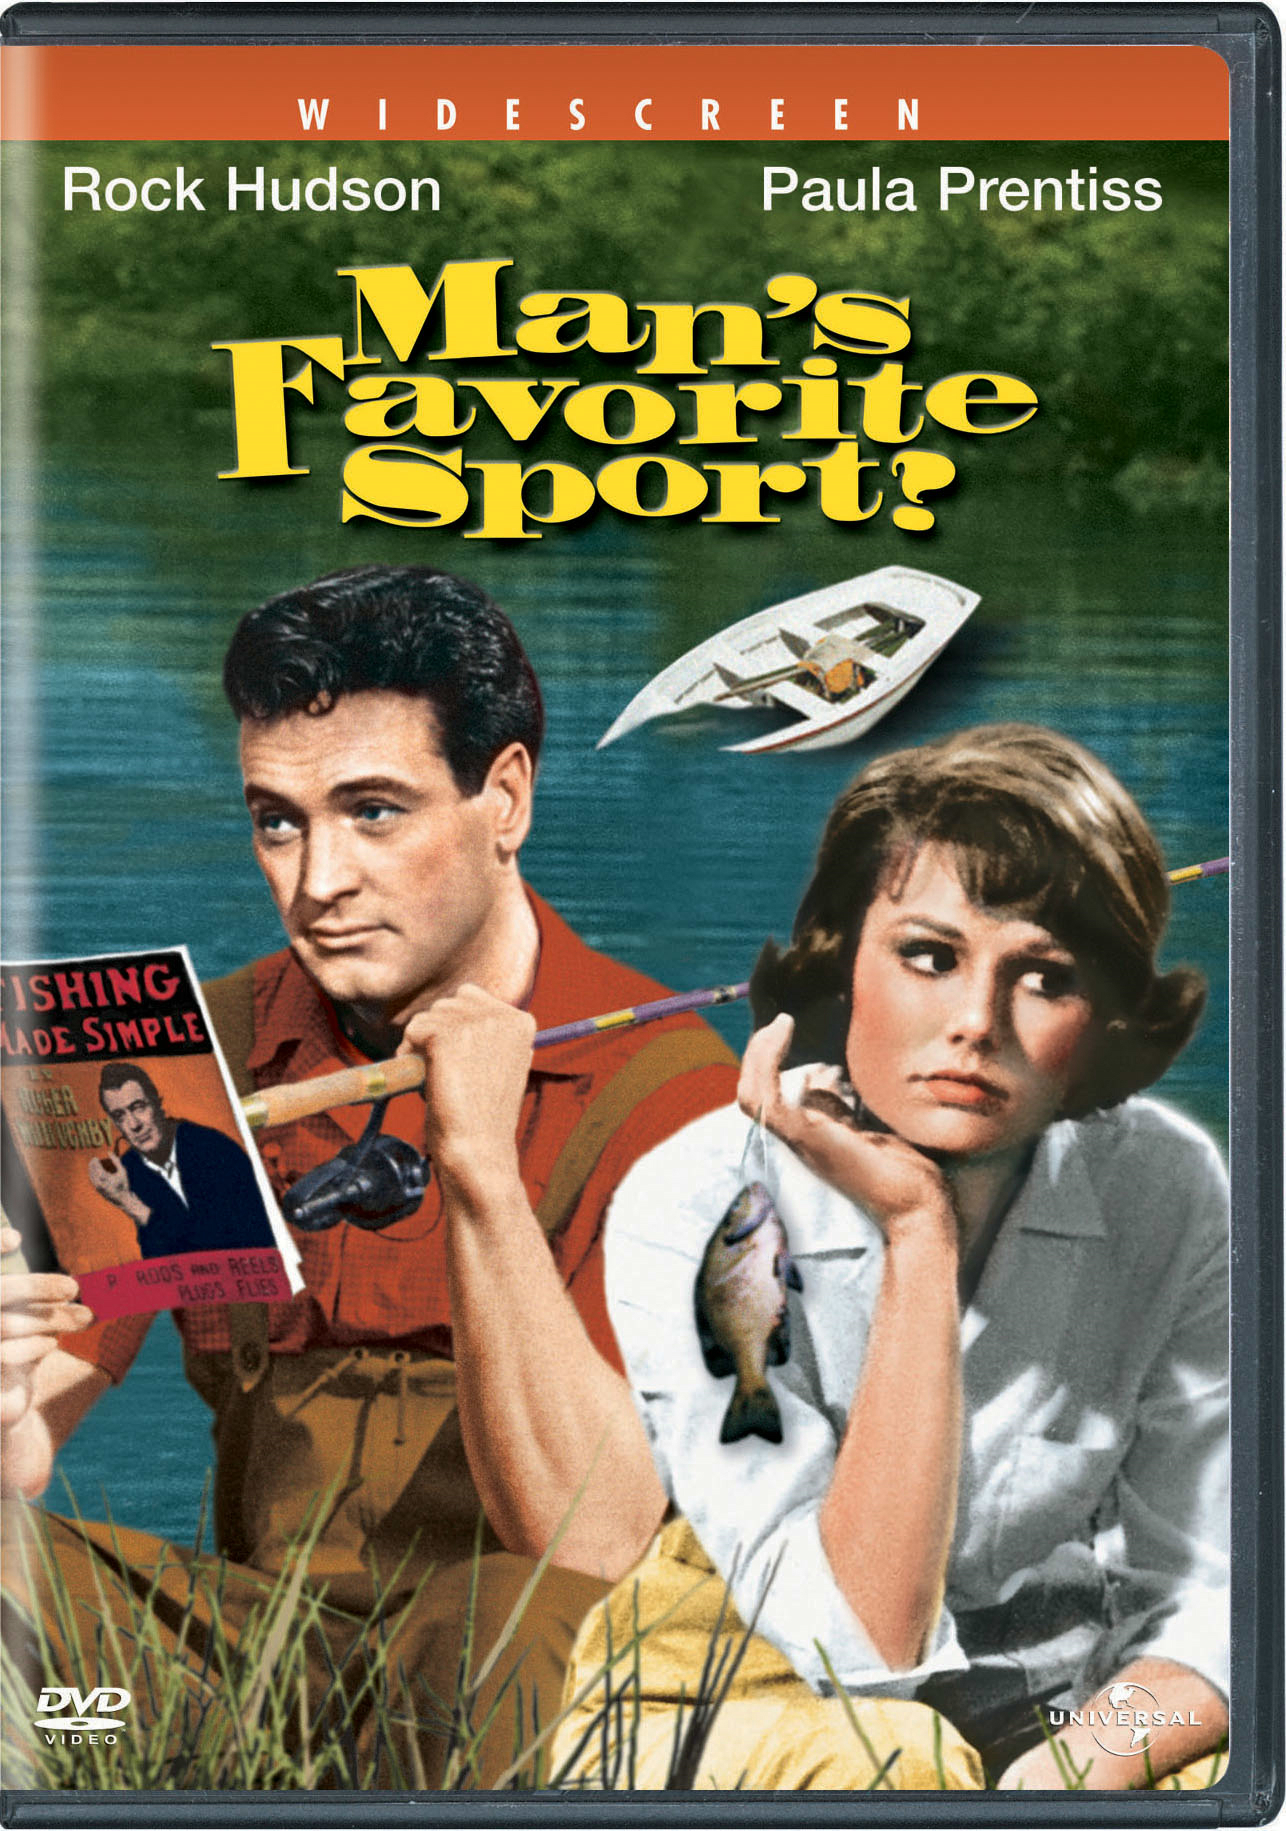 Man's Favourite Sport? [DVD]